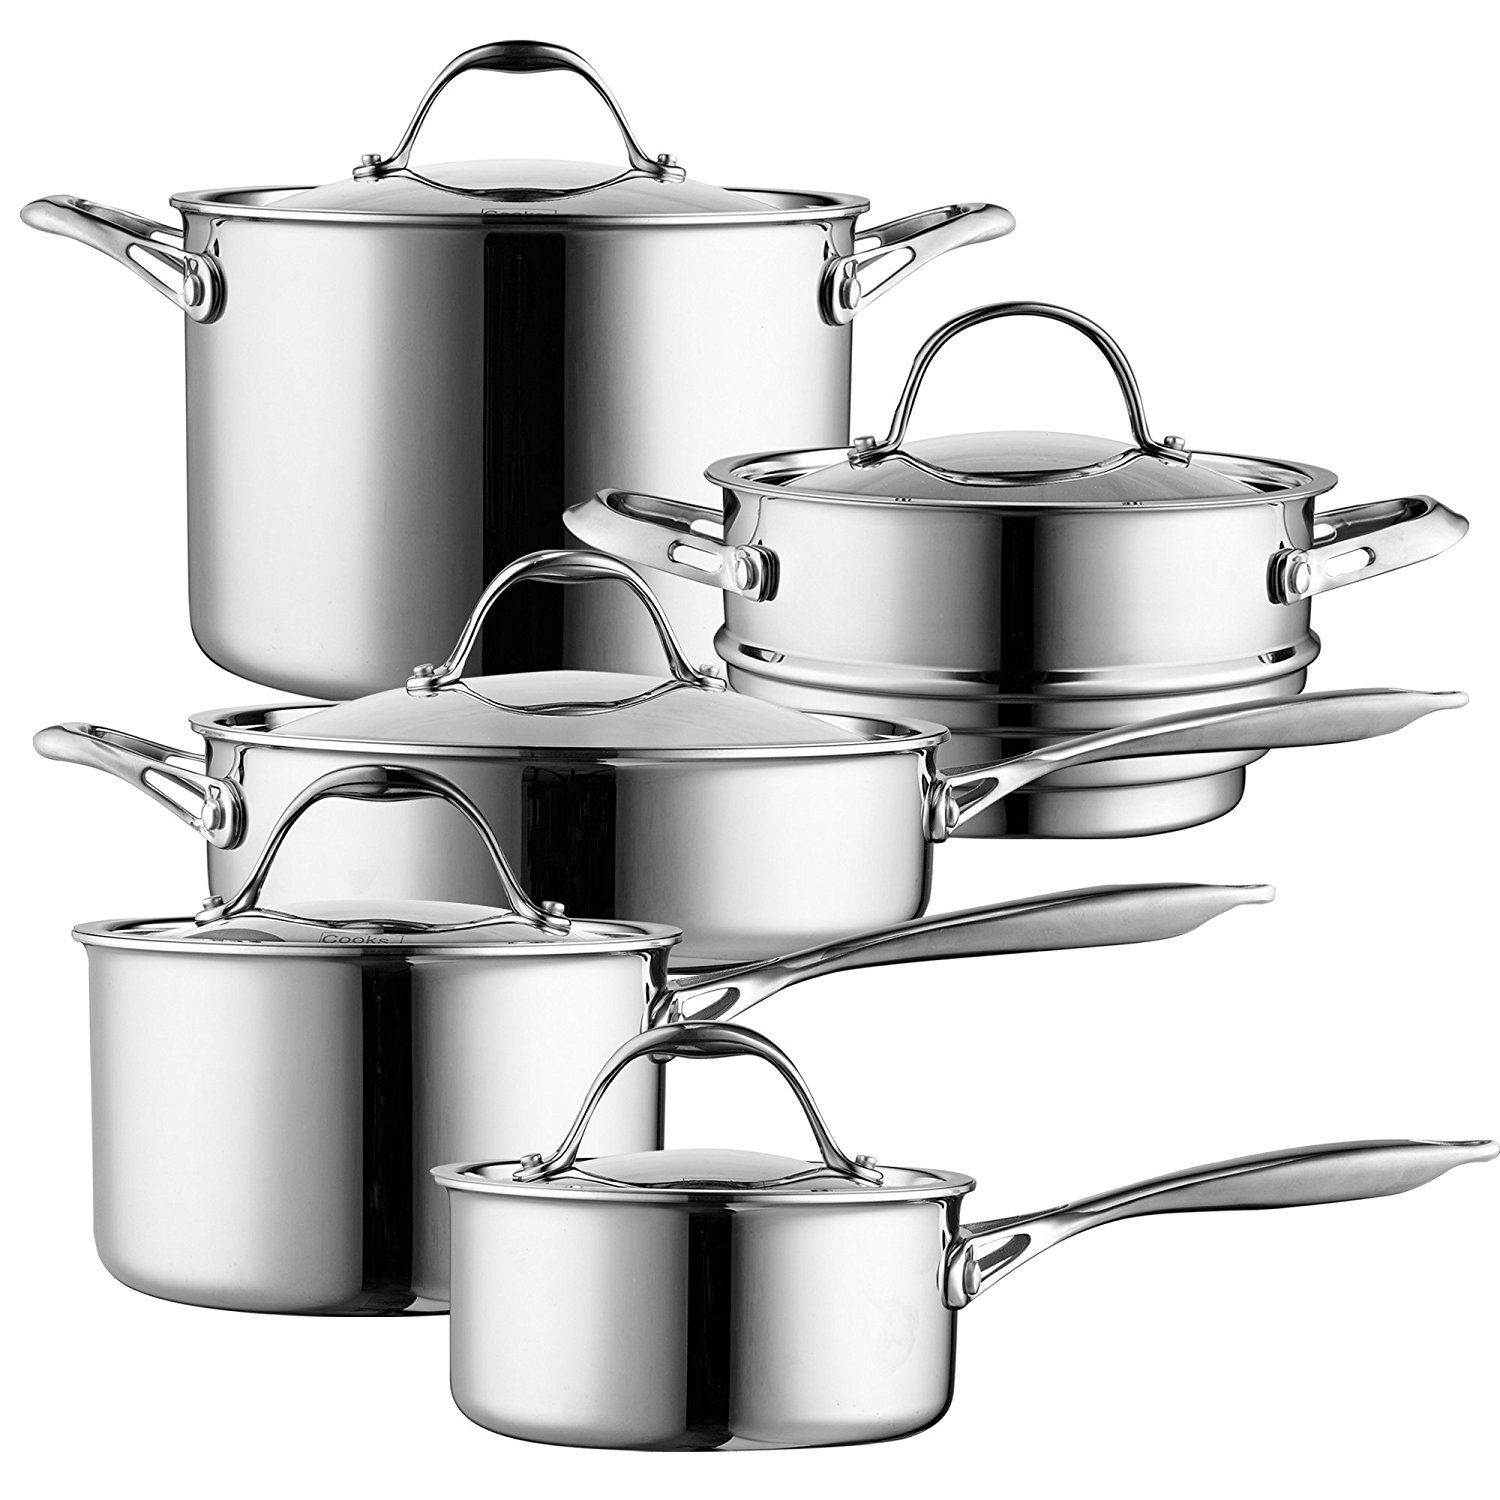 Cook Standard Cookware Set.jpg